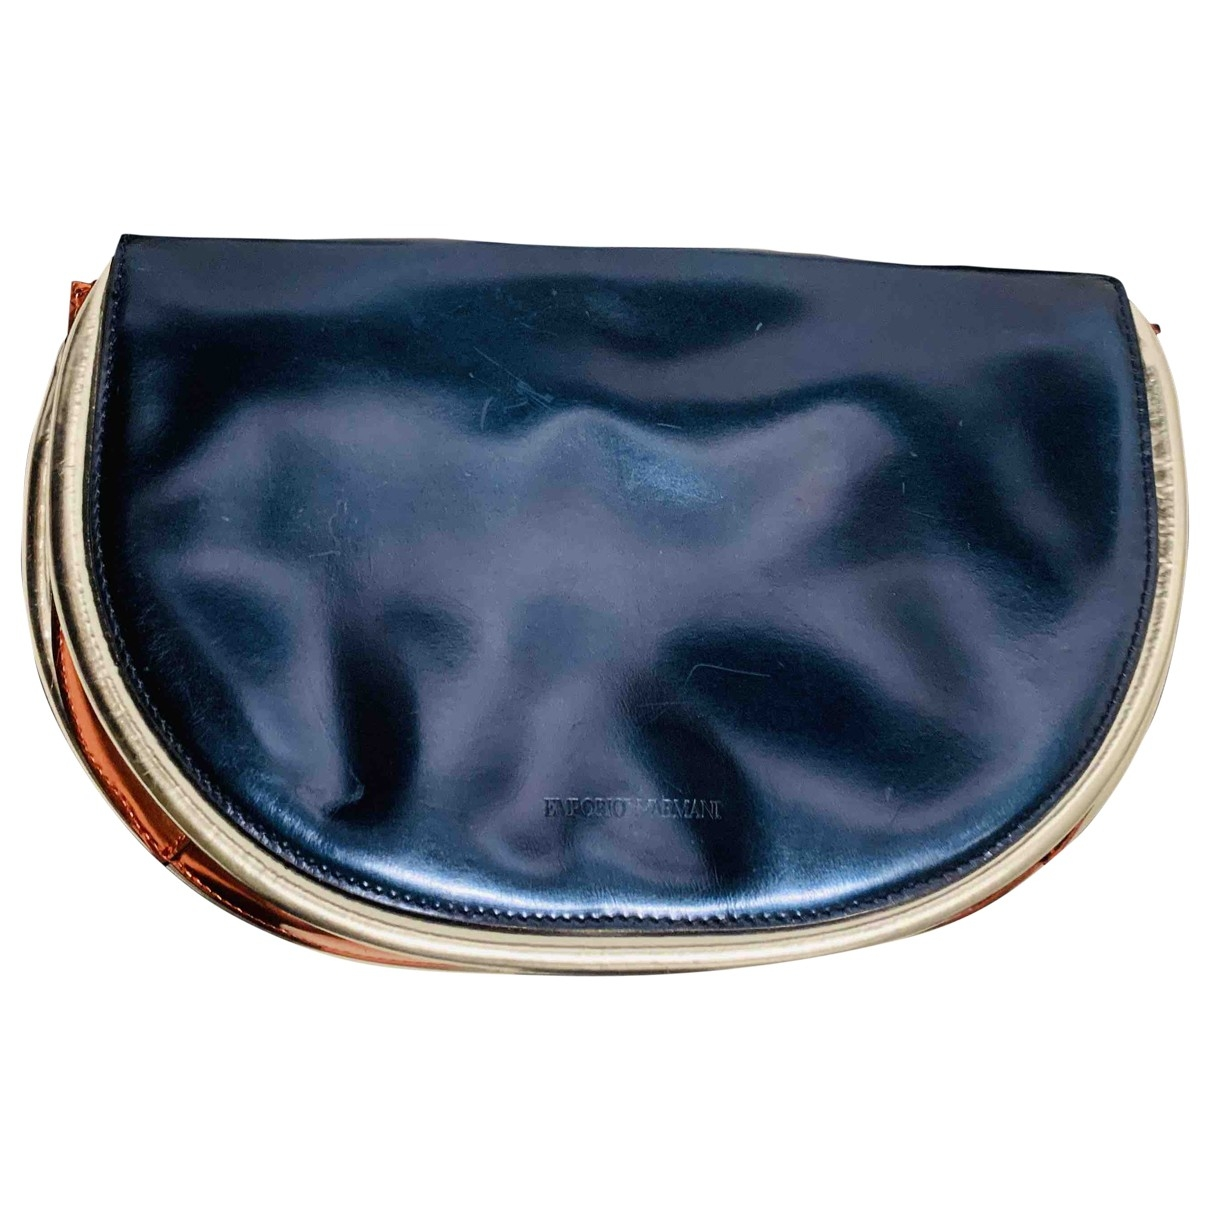 Emporio Armani \N Metallic Leather Clutch bag for Women \N